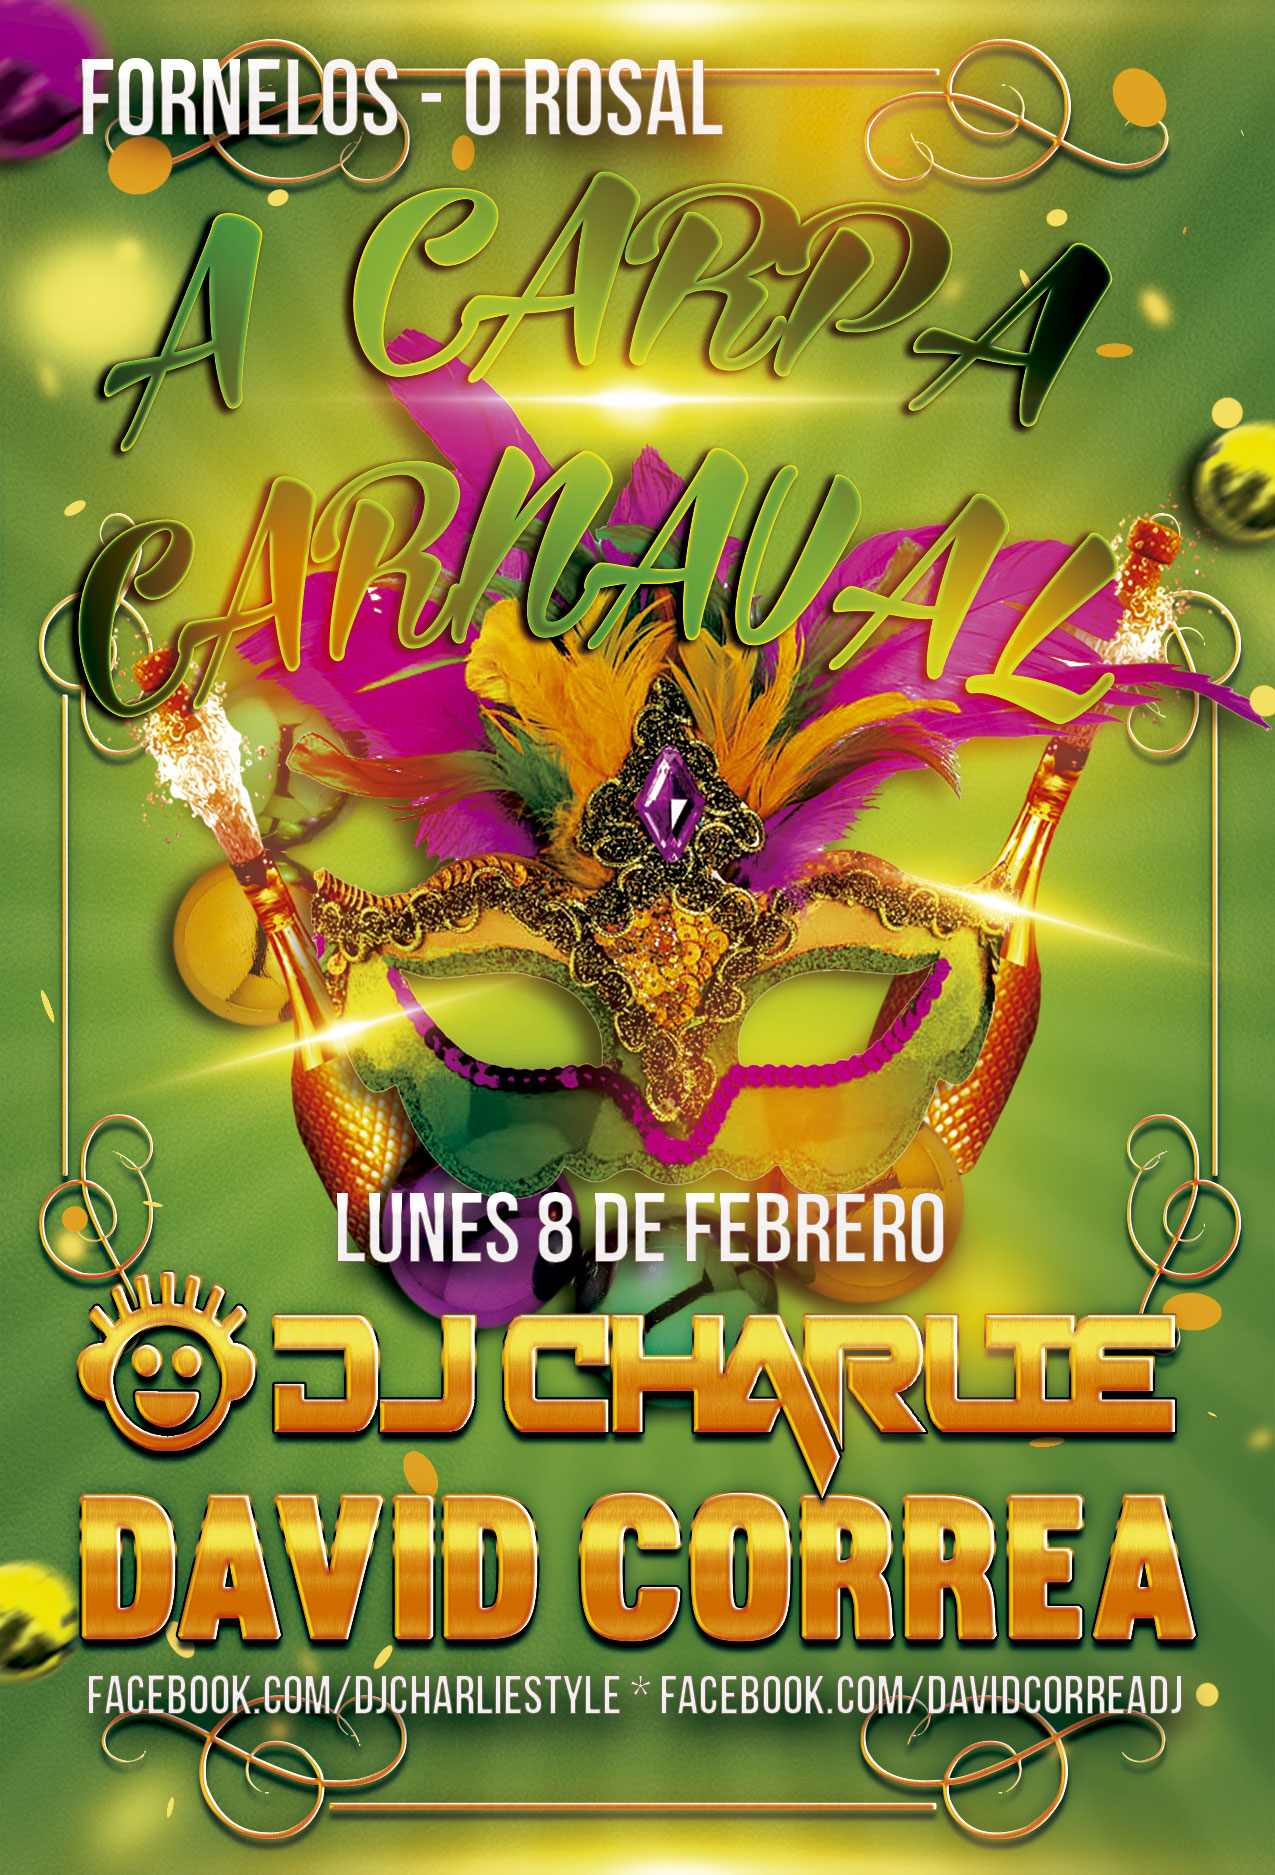 08-02-2016-Fornelos-Carnaval-PERSO